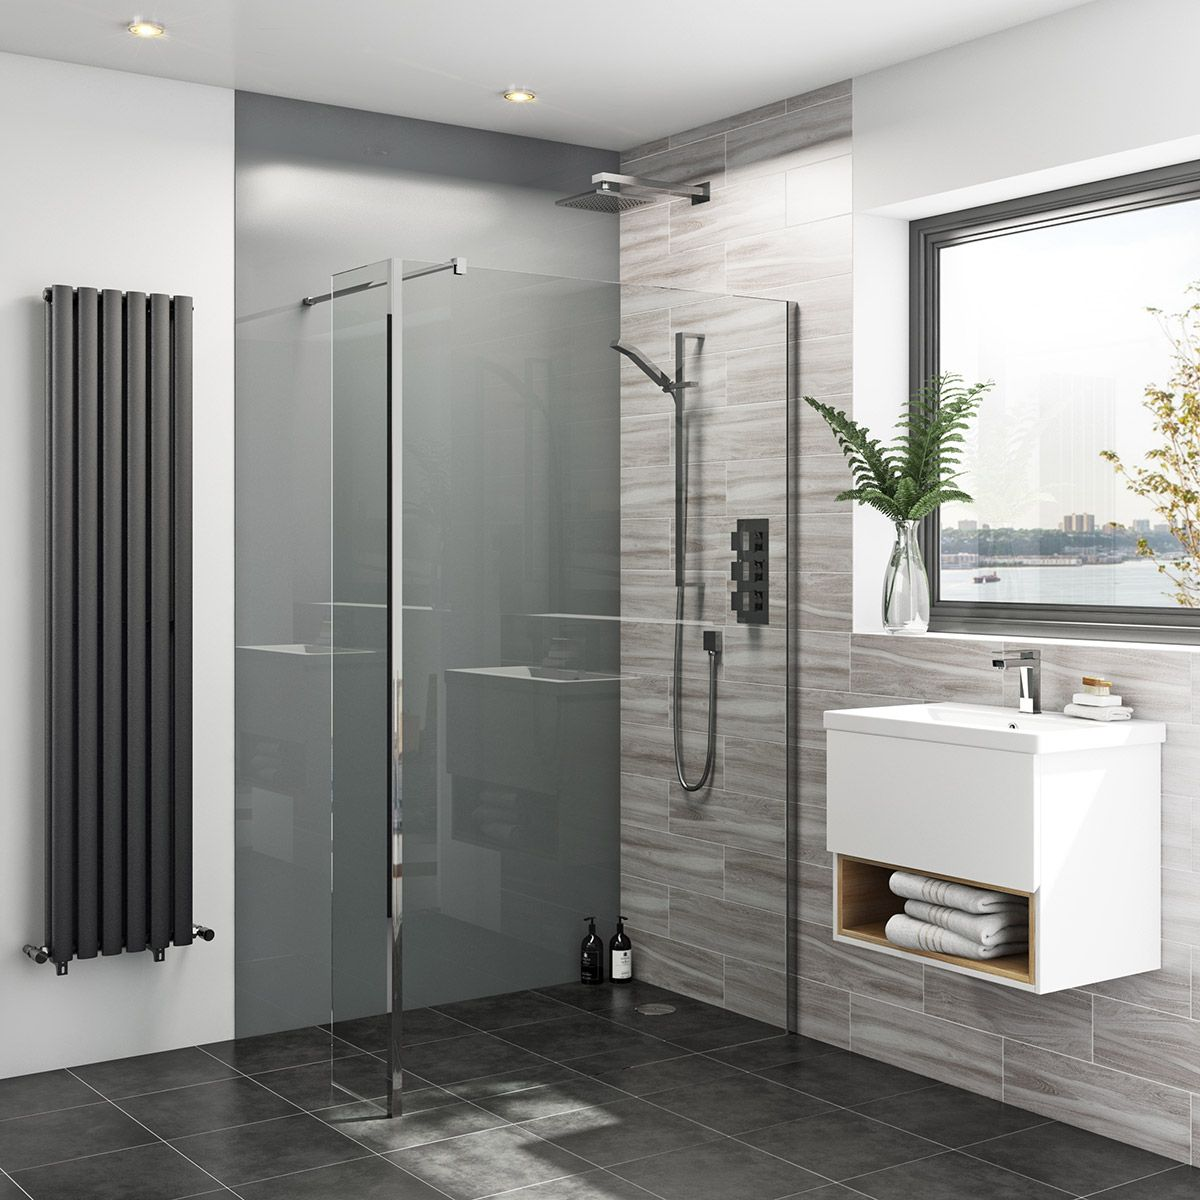 Zenolite plus ash acrylic shower wall panel 2440 x 1220 | Acrylic ...